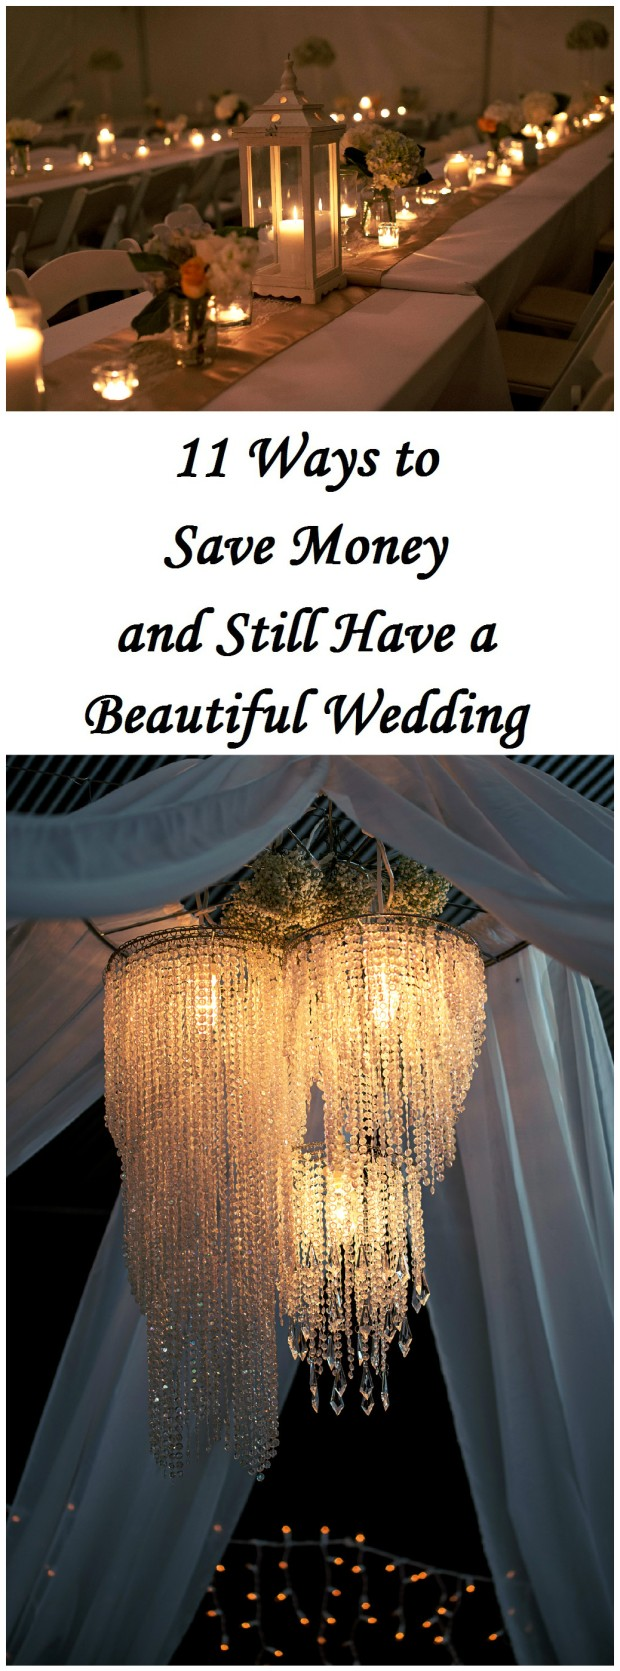 11 Ways to Save Money and Still Have a Beautiful Wedding